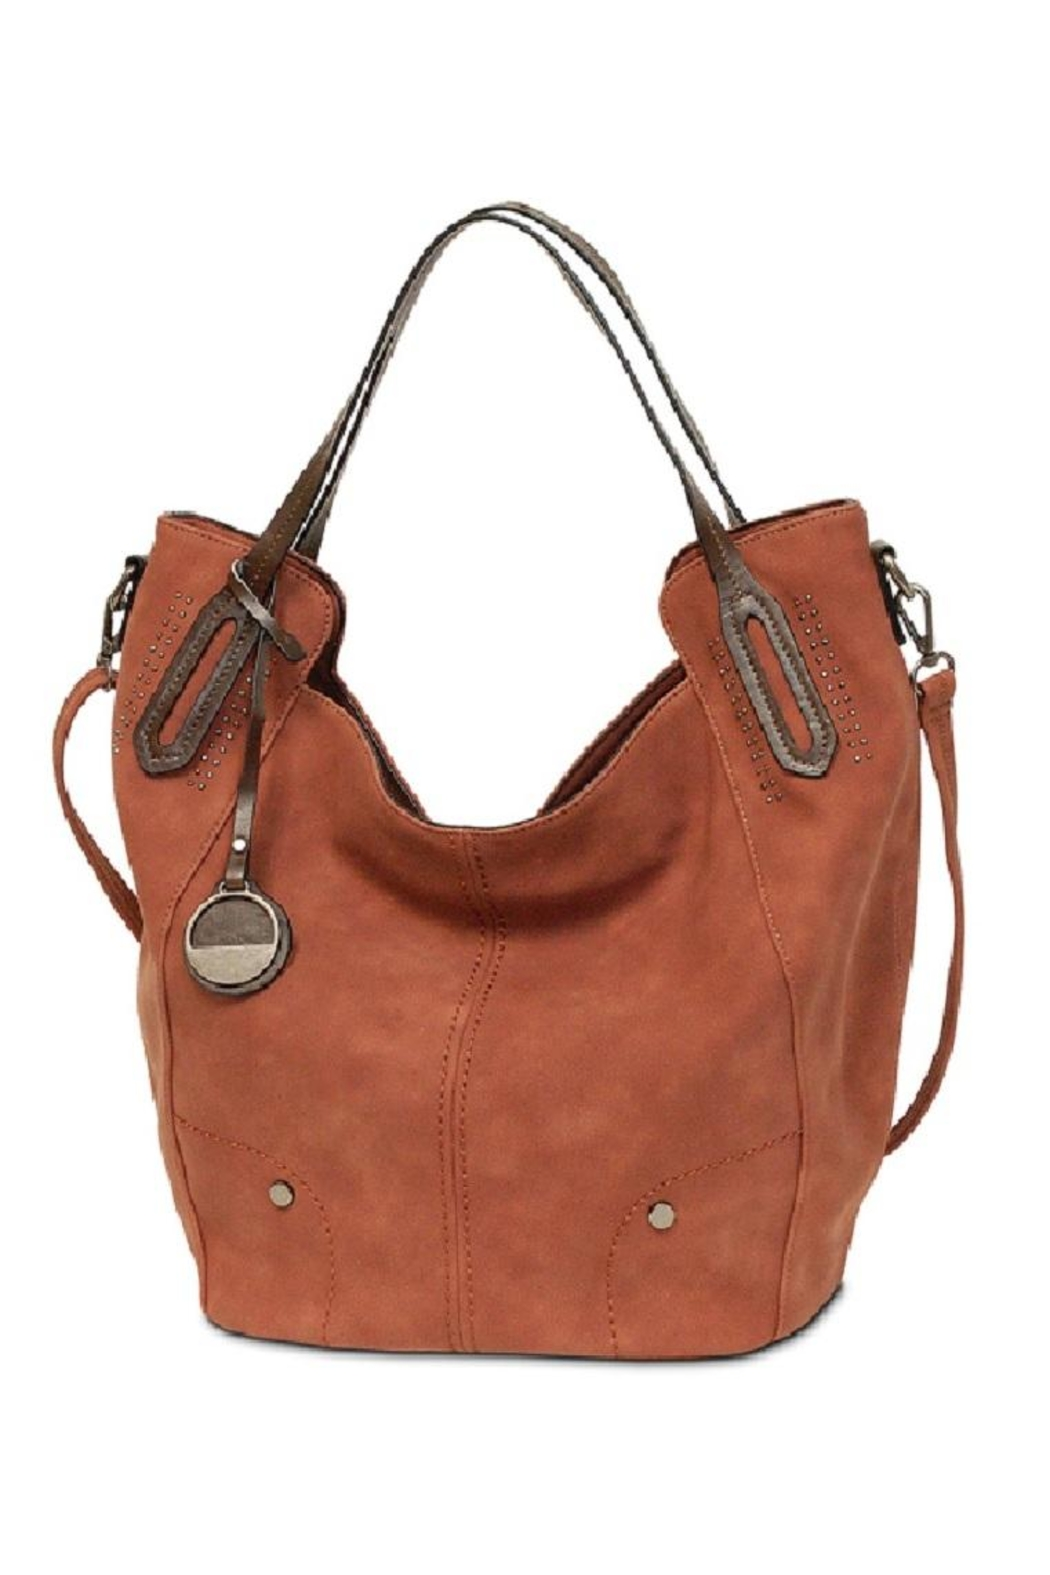 10c8dab7c3d2 MC Handbags Leather Hobo Tote from Saratoga by Laura M — Shoptiques